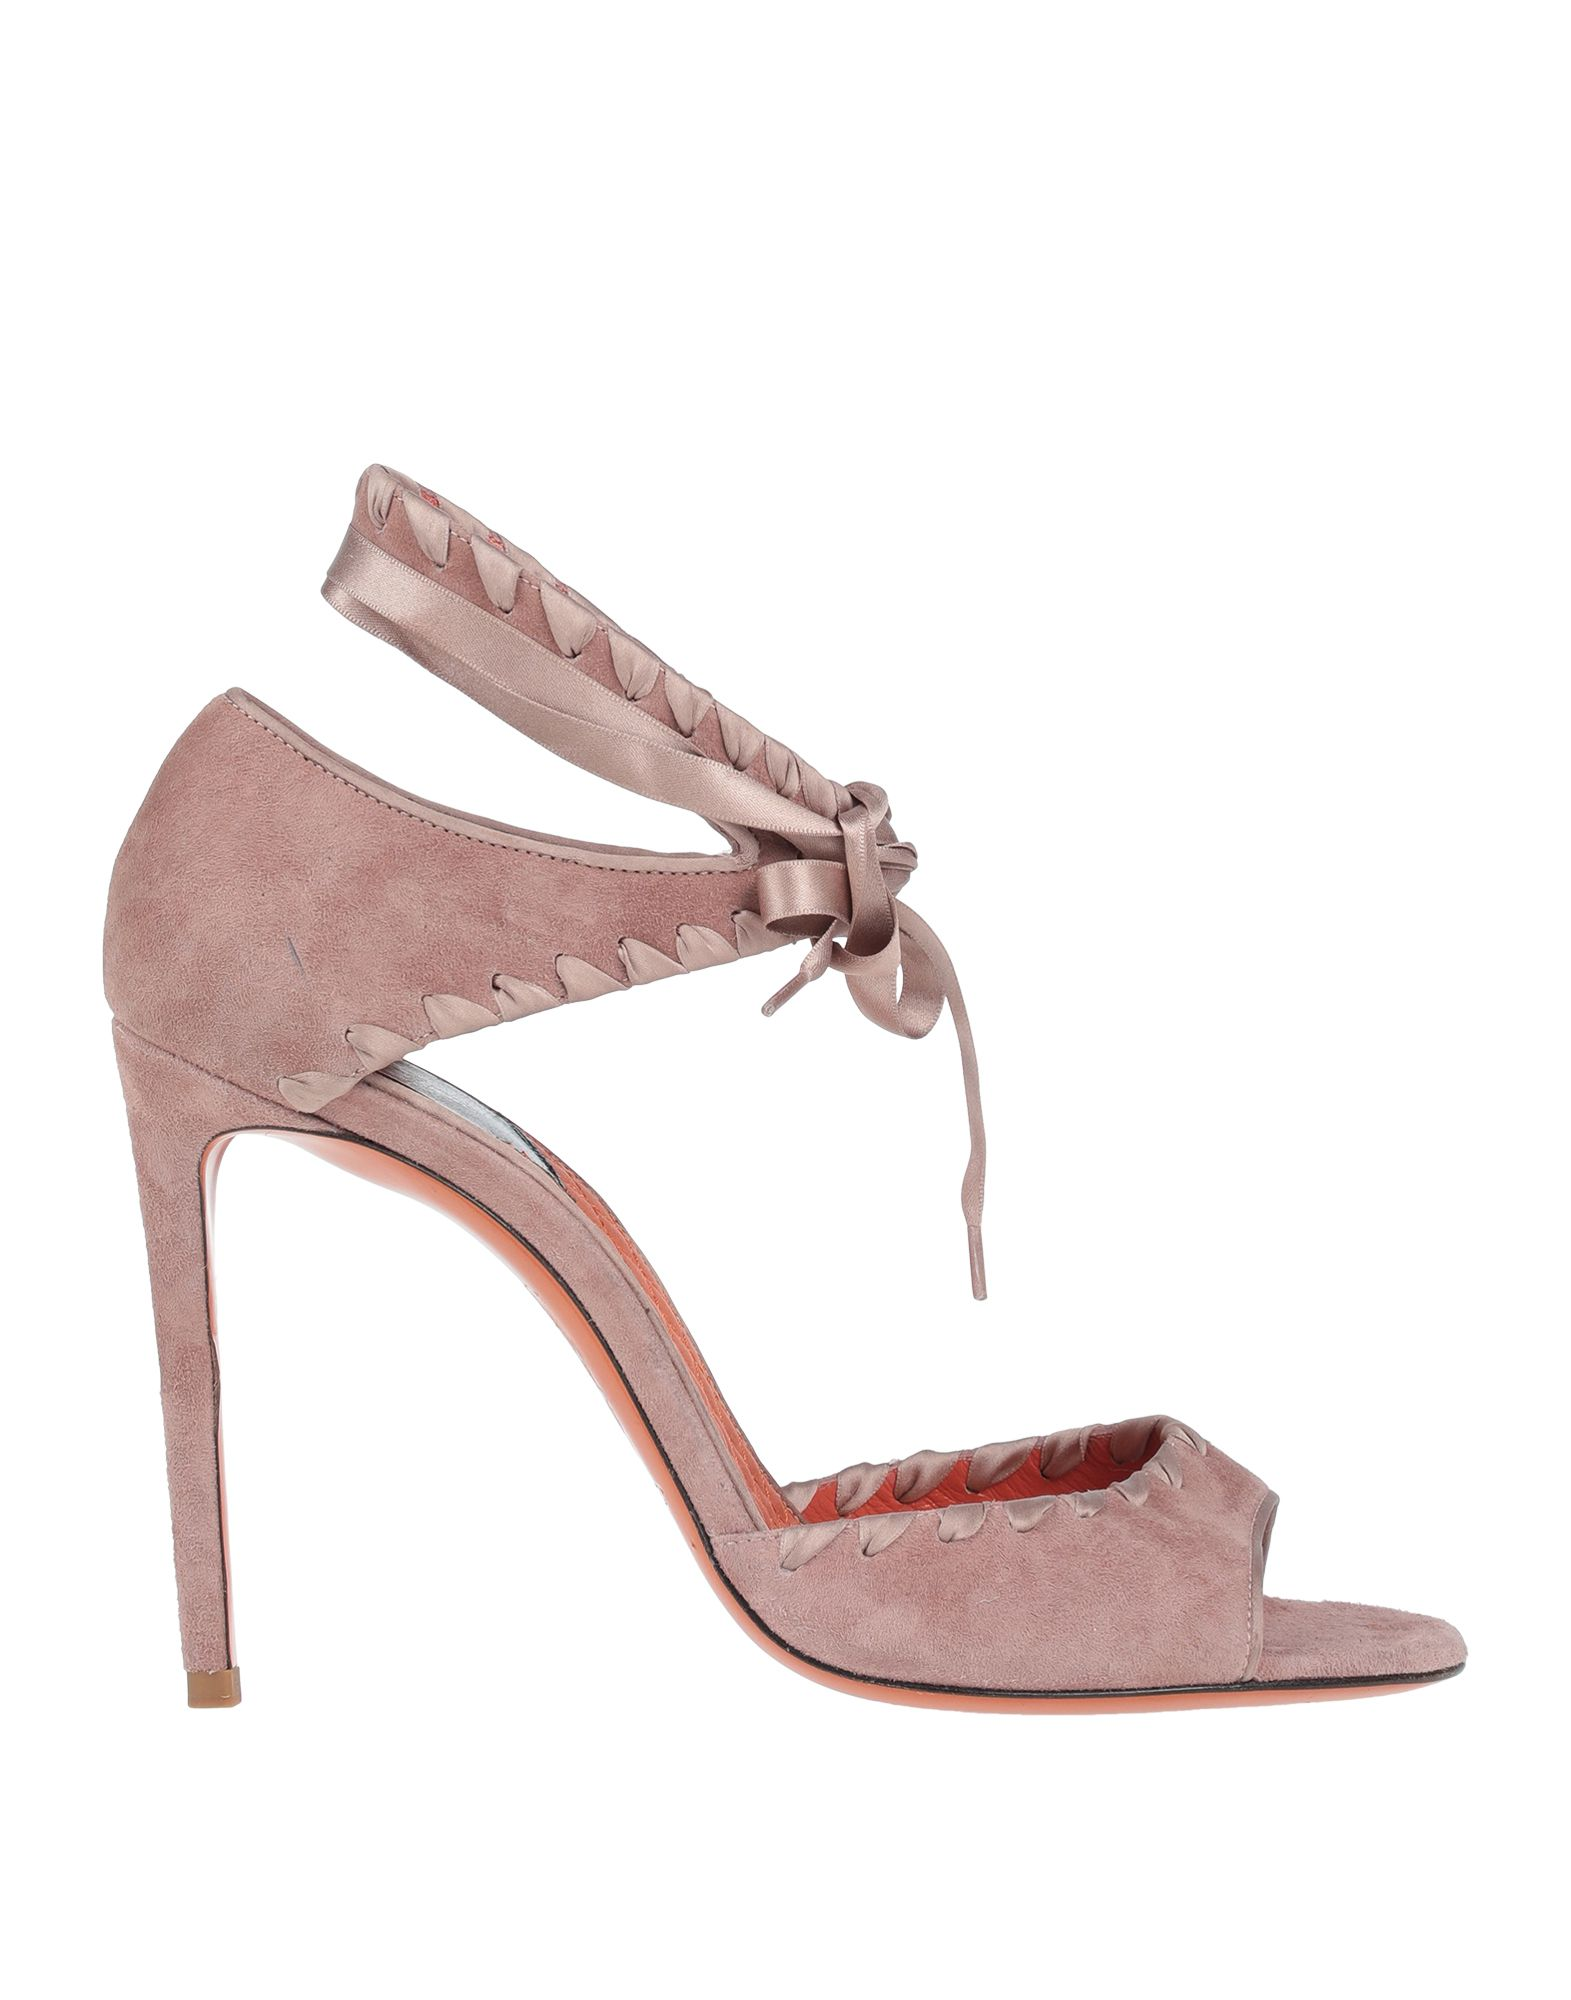 SANTONI Sandals. leather, suede effect, no appliqués, solid color, wrapping straps closure, round toeline, spike heel, leather lining, leather/rubber sole, contains non-textile parts of animal origin, large sized. Soft Leather